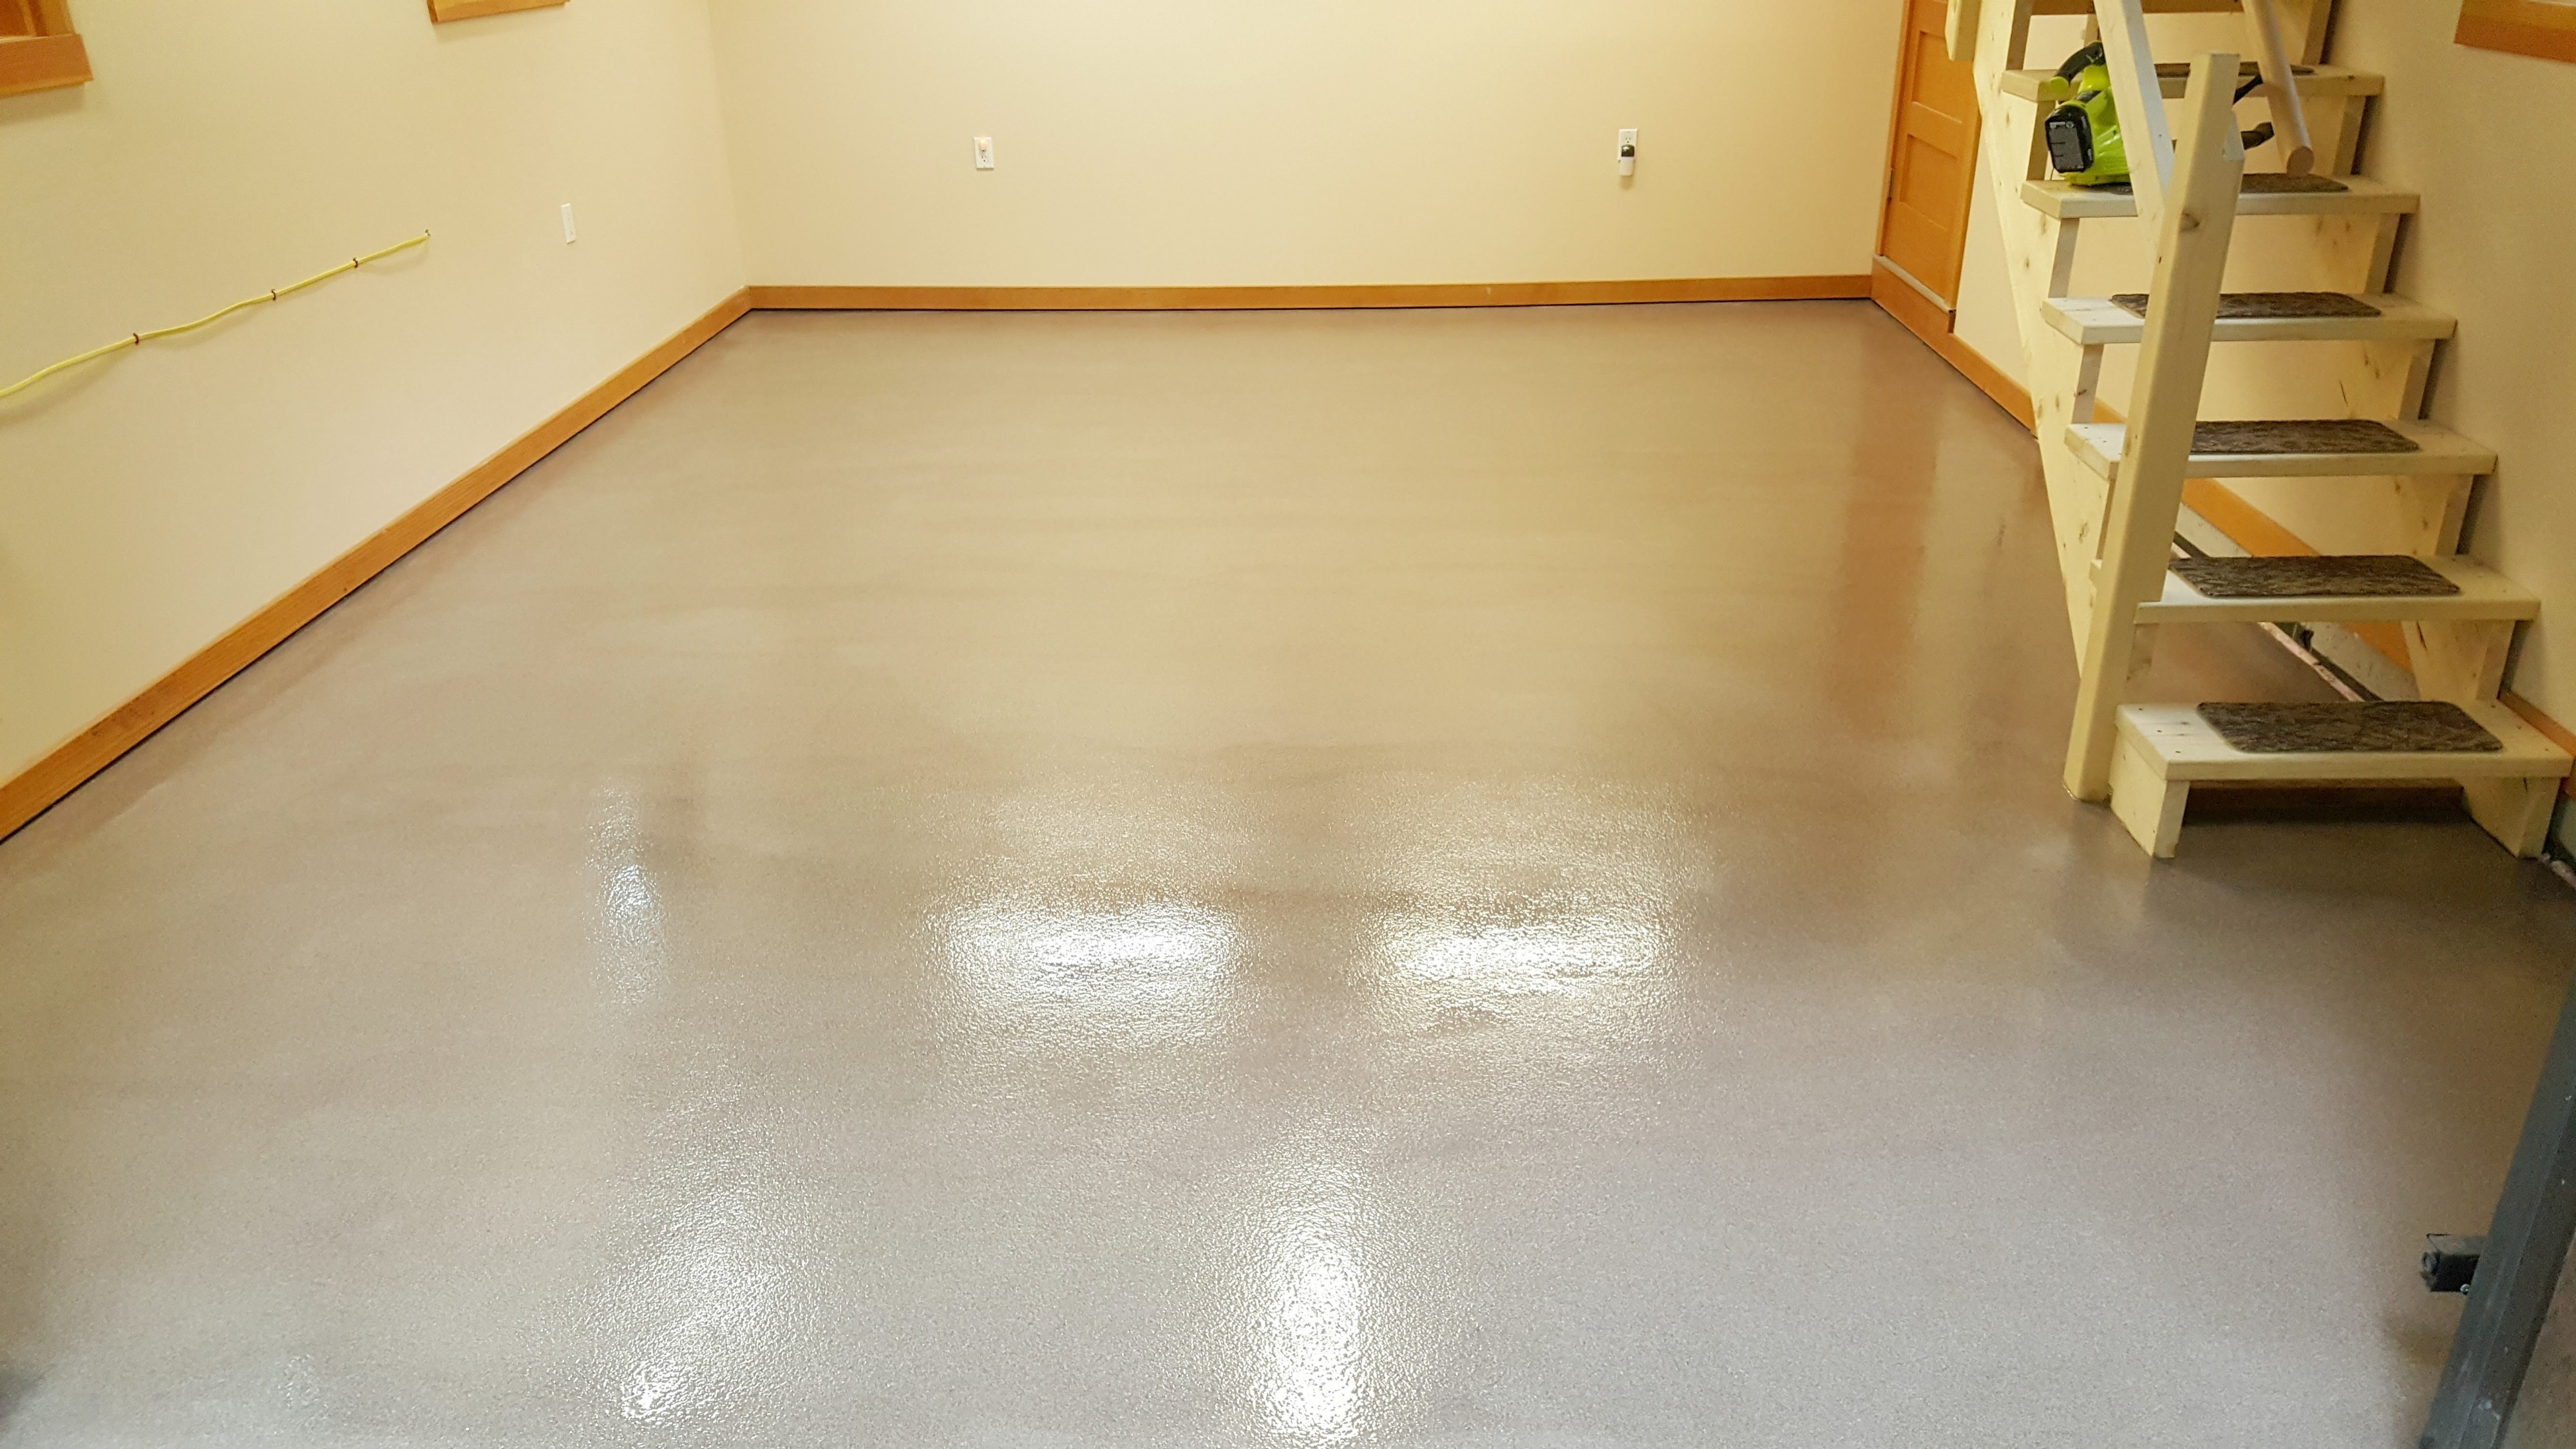 Garage Floor Epoxy Options Concrete Floor Epoxy In Maine Installed By Day S Concrete Floors Inc